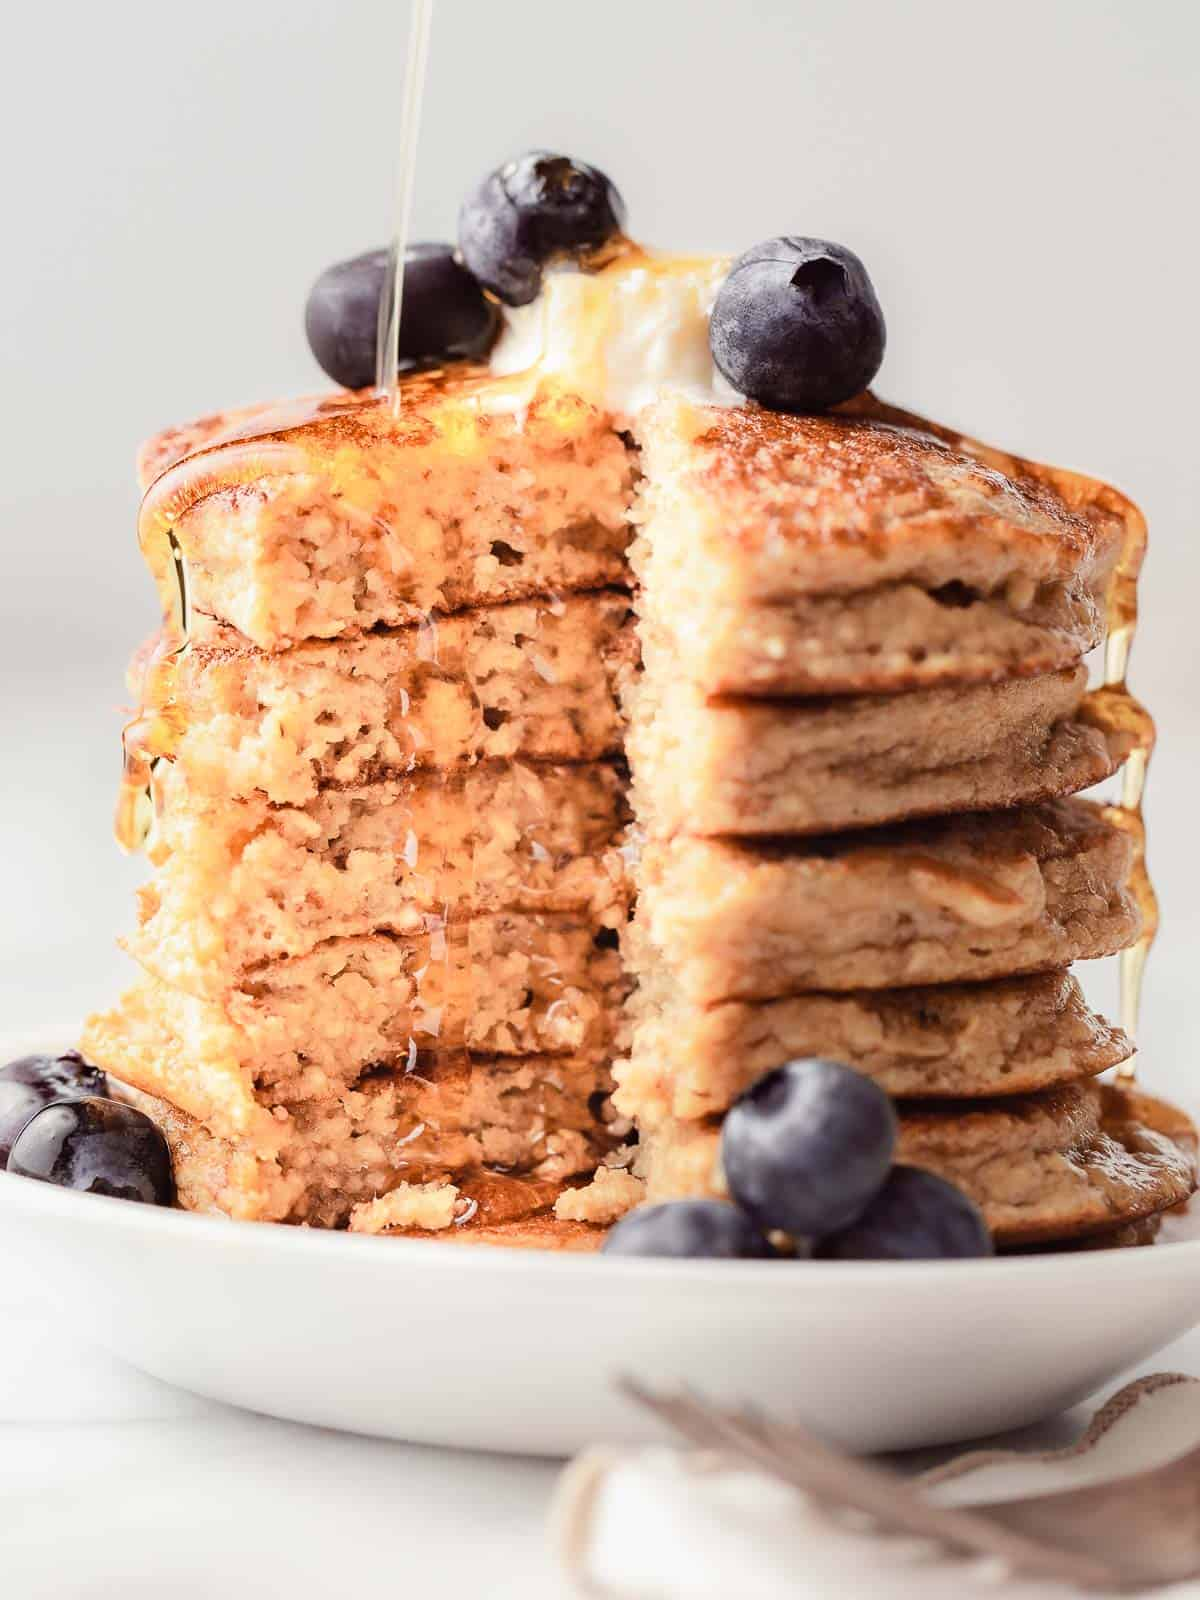 Fluffy protein pancakes with syrup, blueberries and butter.